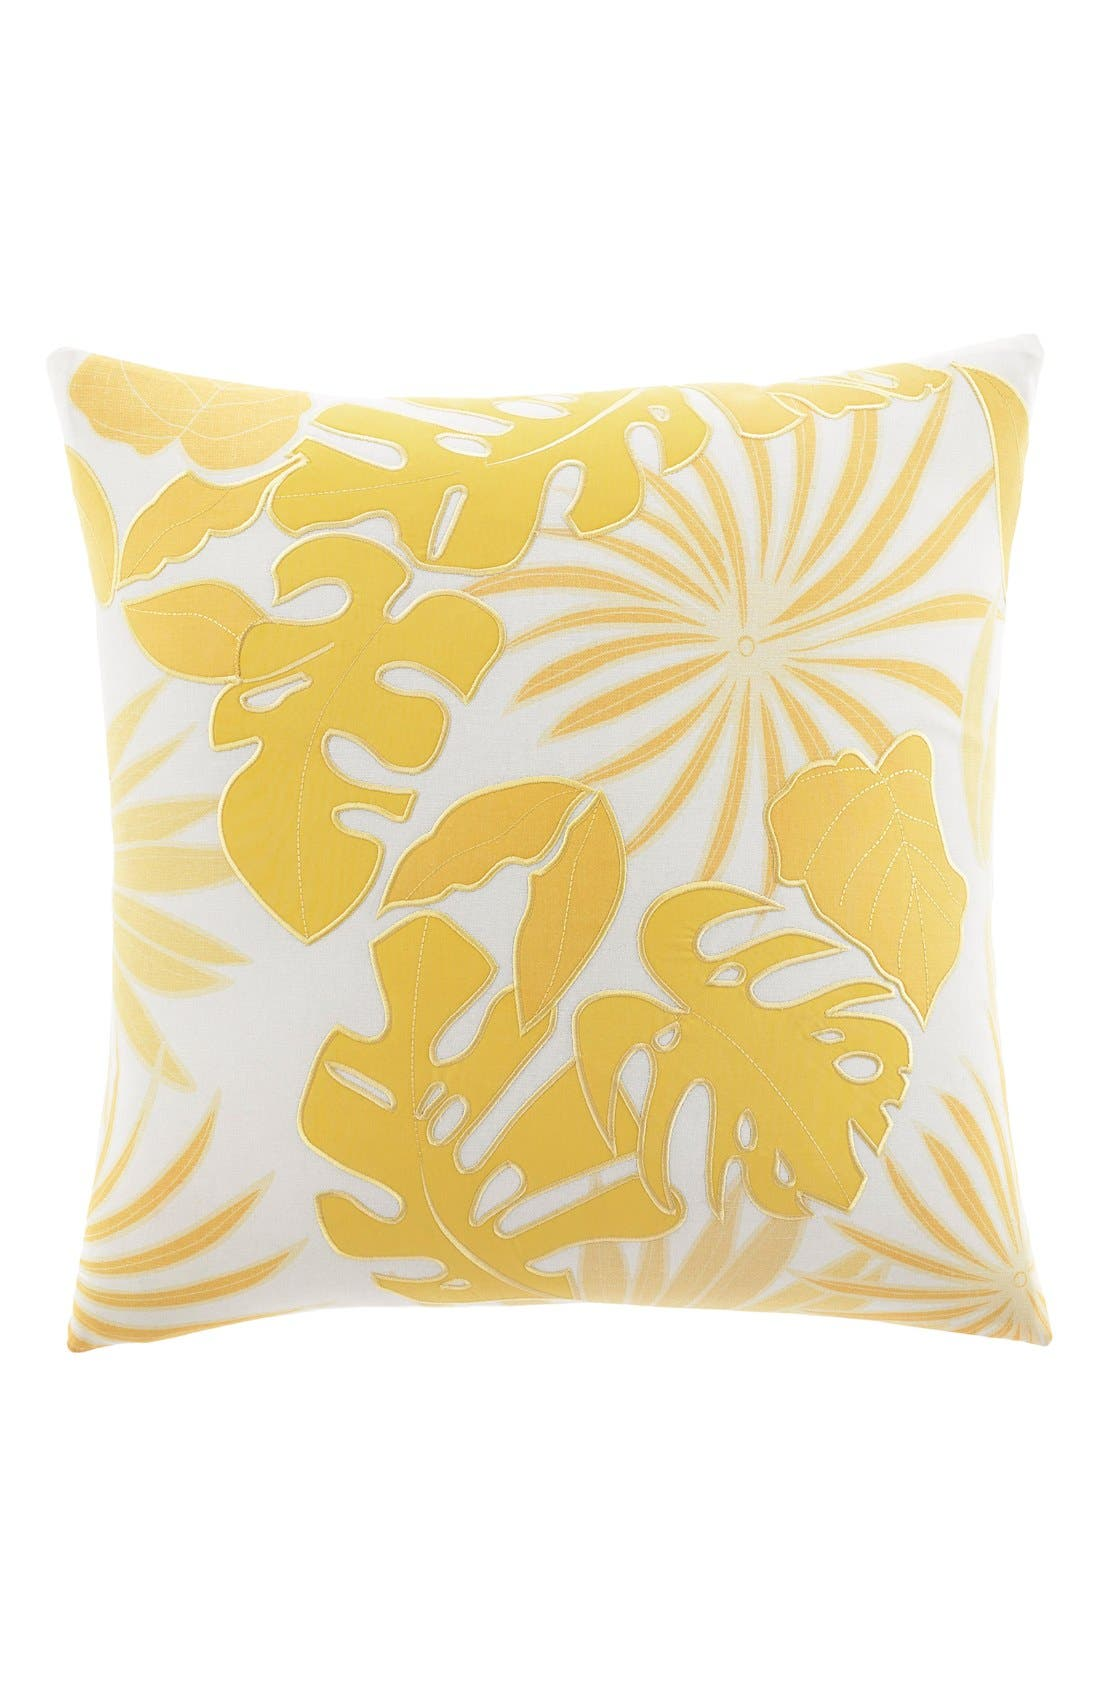 Alternate Image 1 Selected - Tommy Bahama 'Antique Palm' Accent Pillow